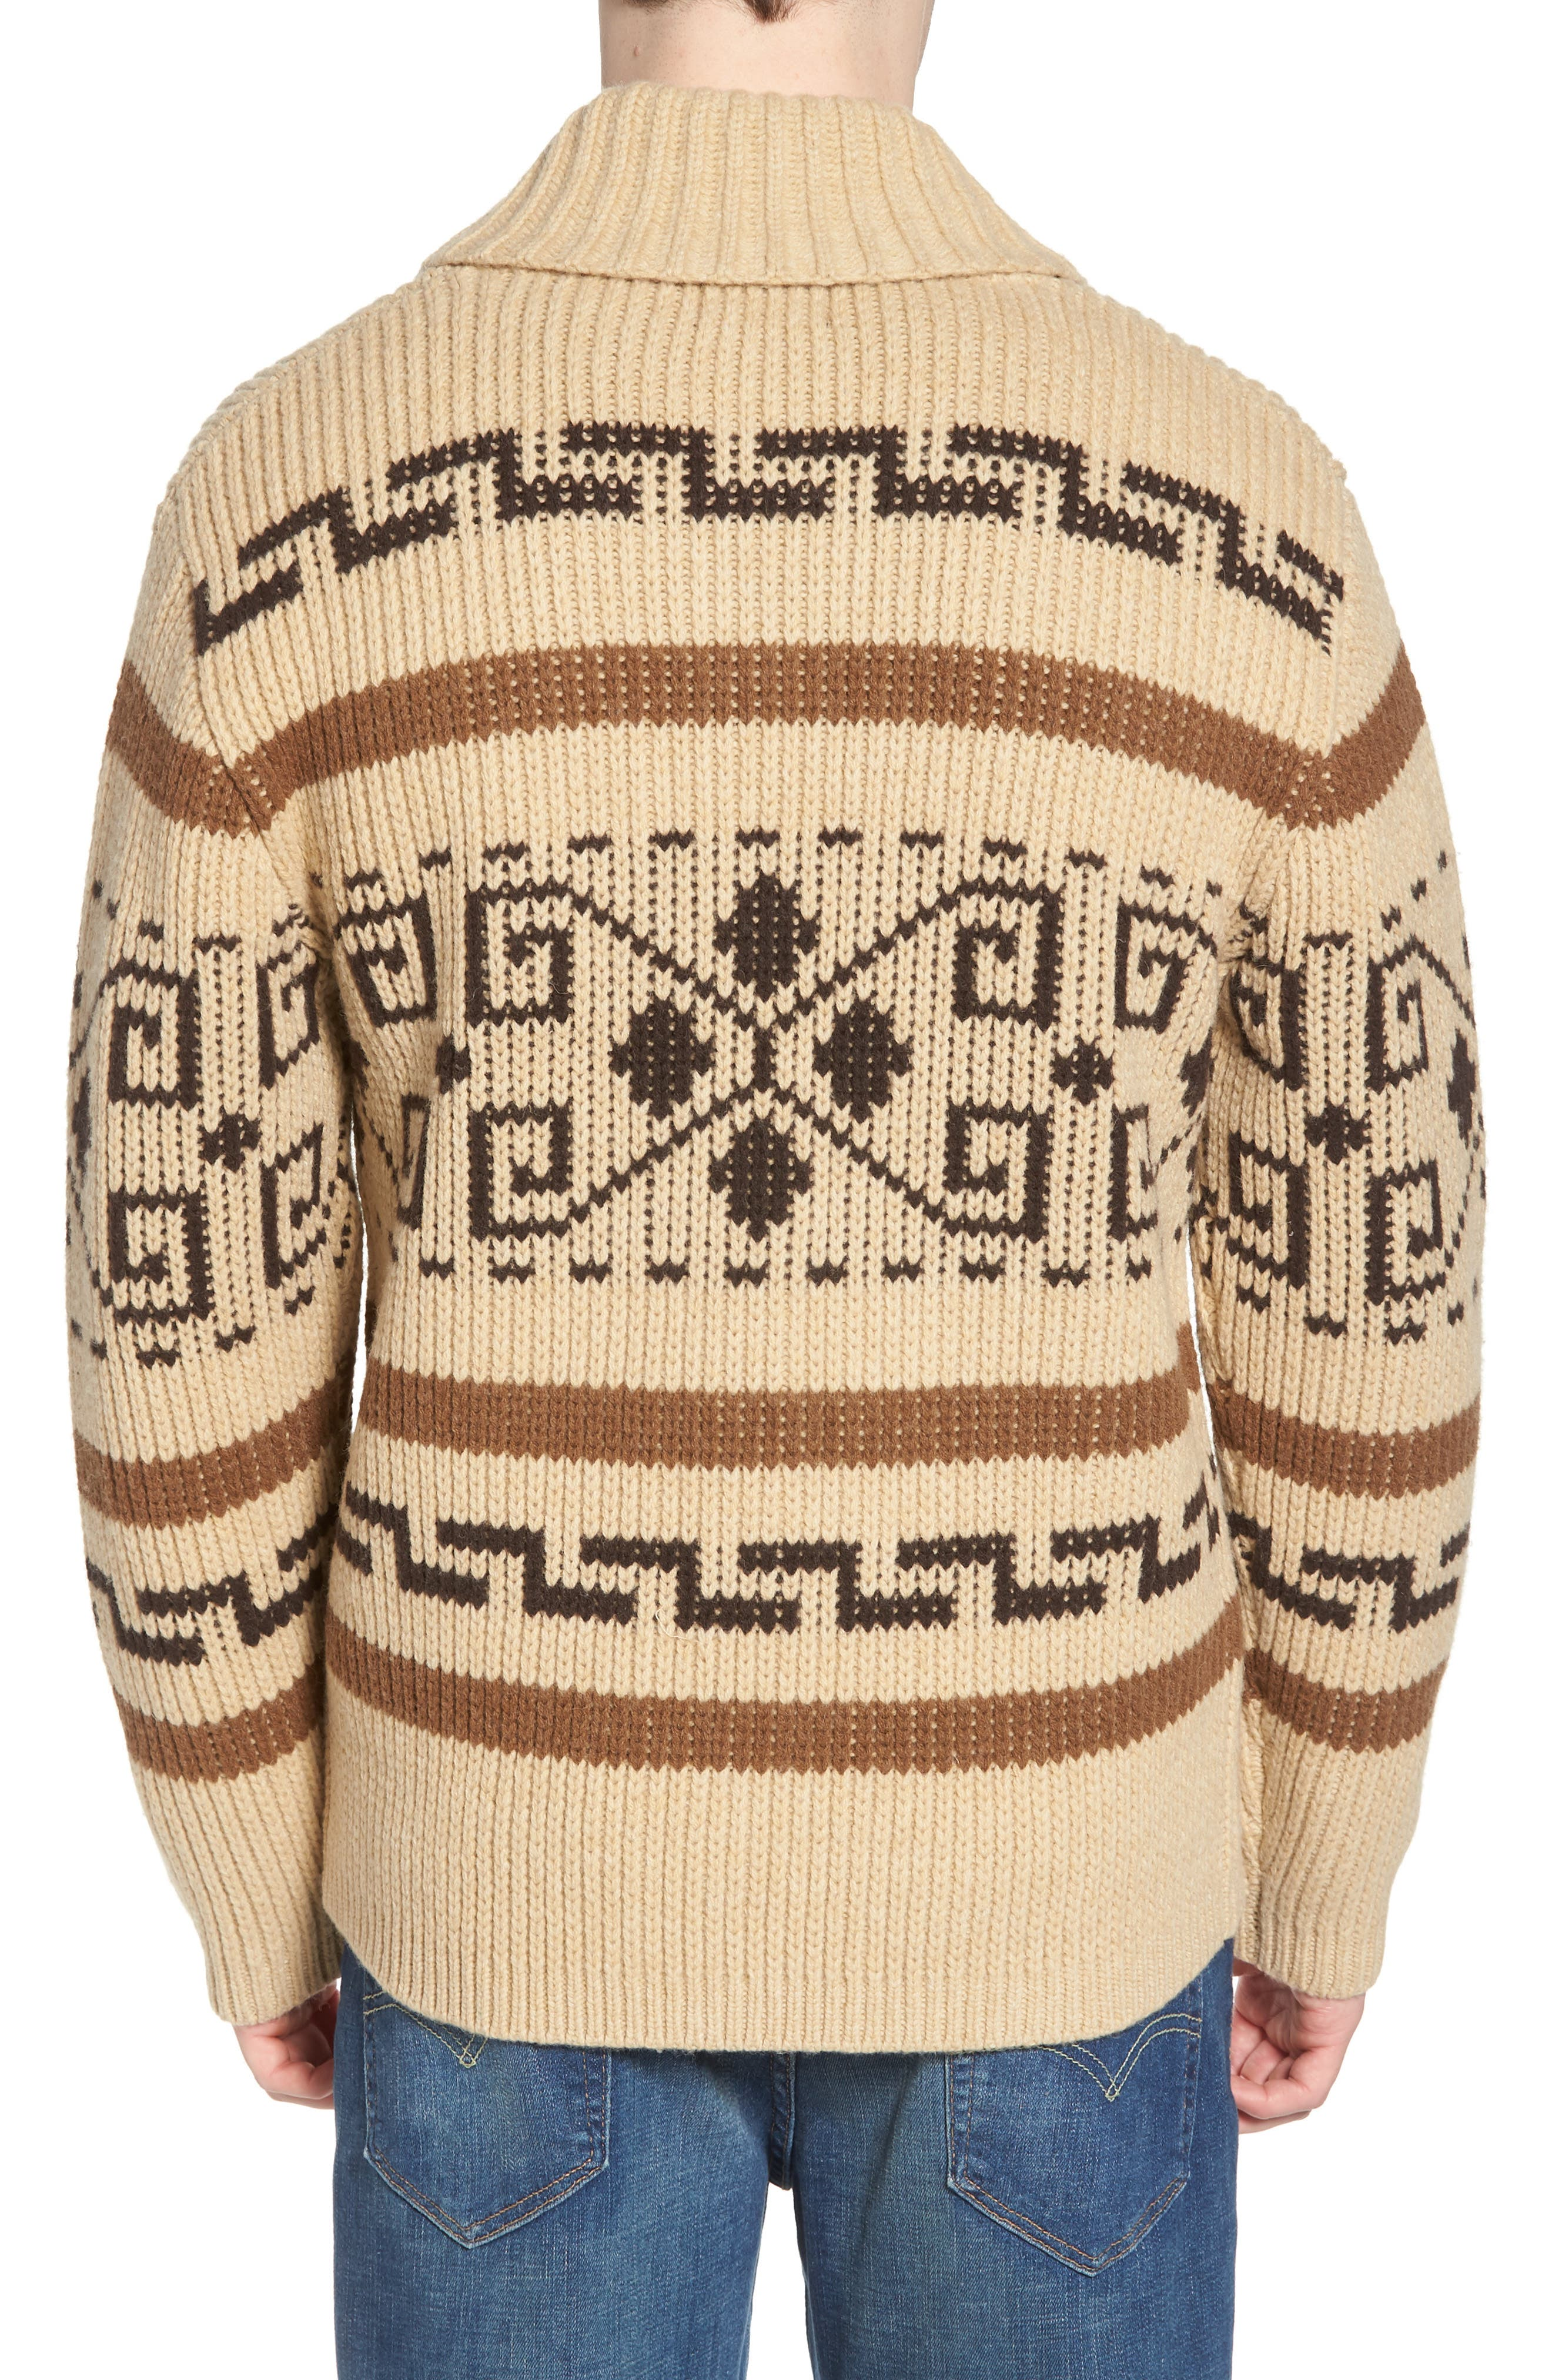 Original Westerly Sweater,                             Alternate thumbnail 2, color,                             260